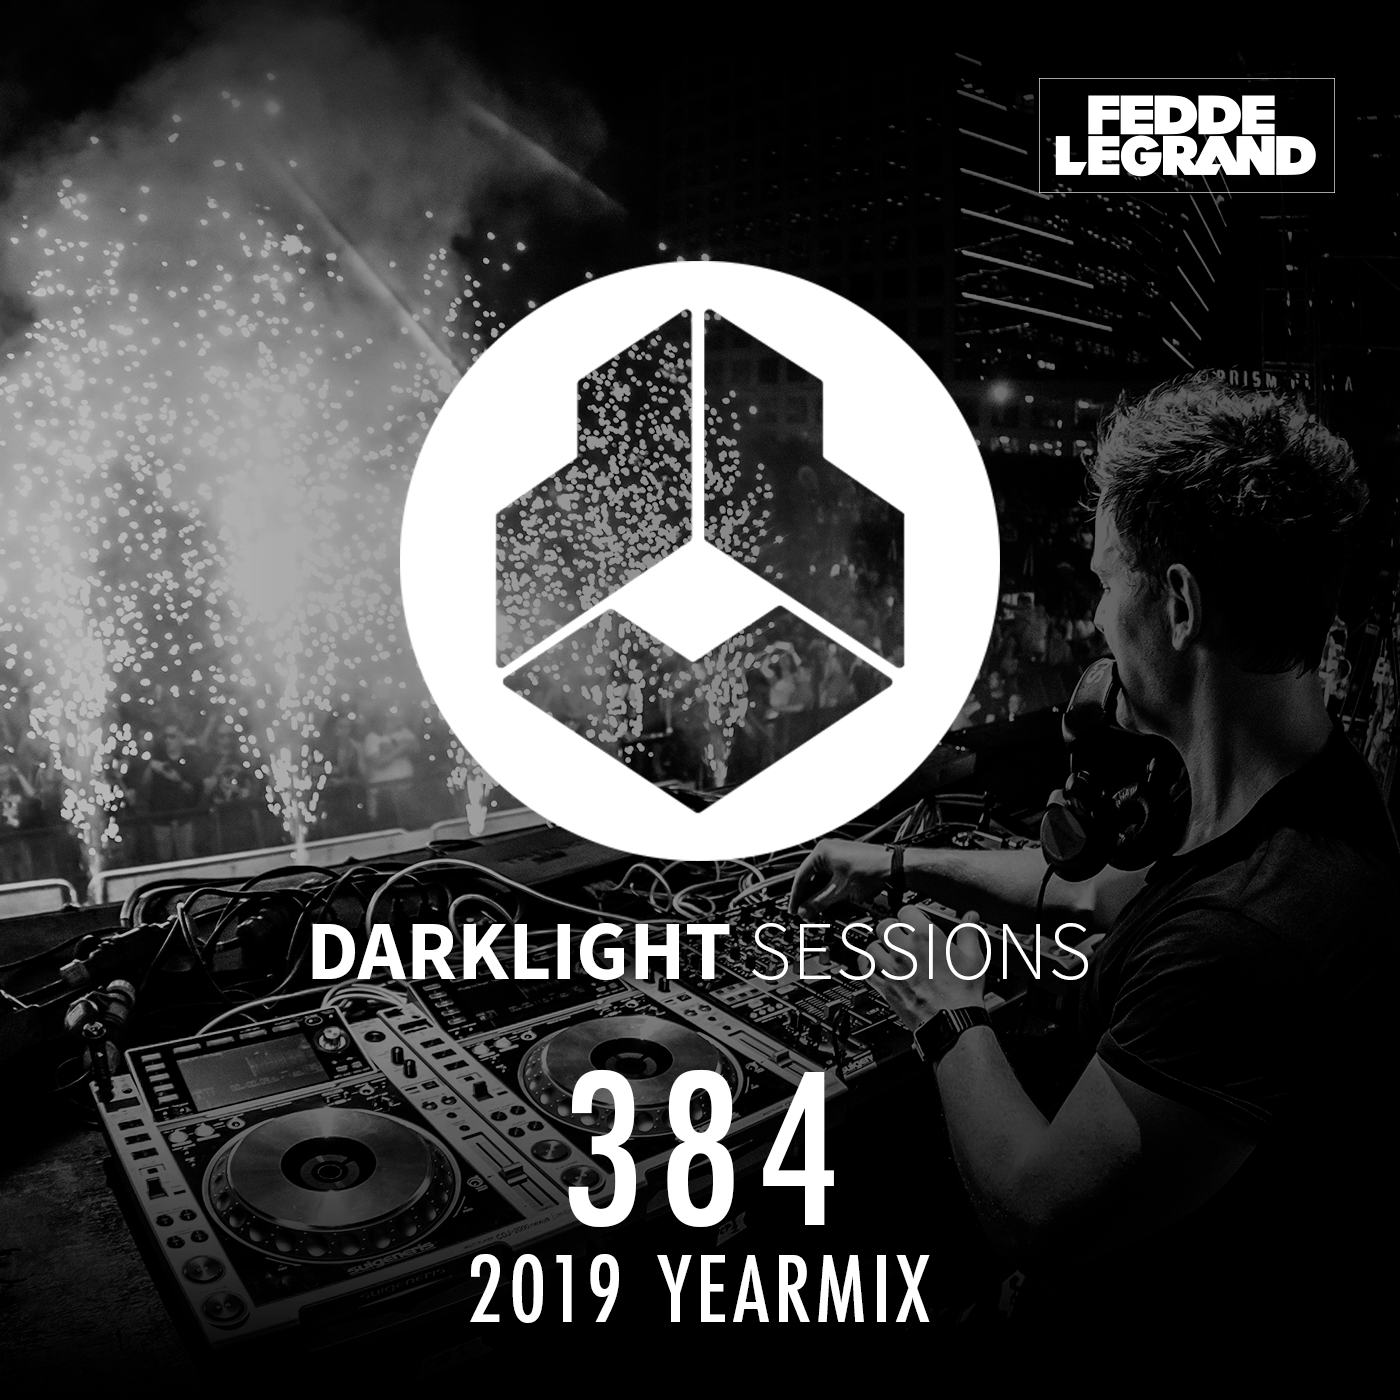 Darklight Sessions 384 (2019 YEARMIX)